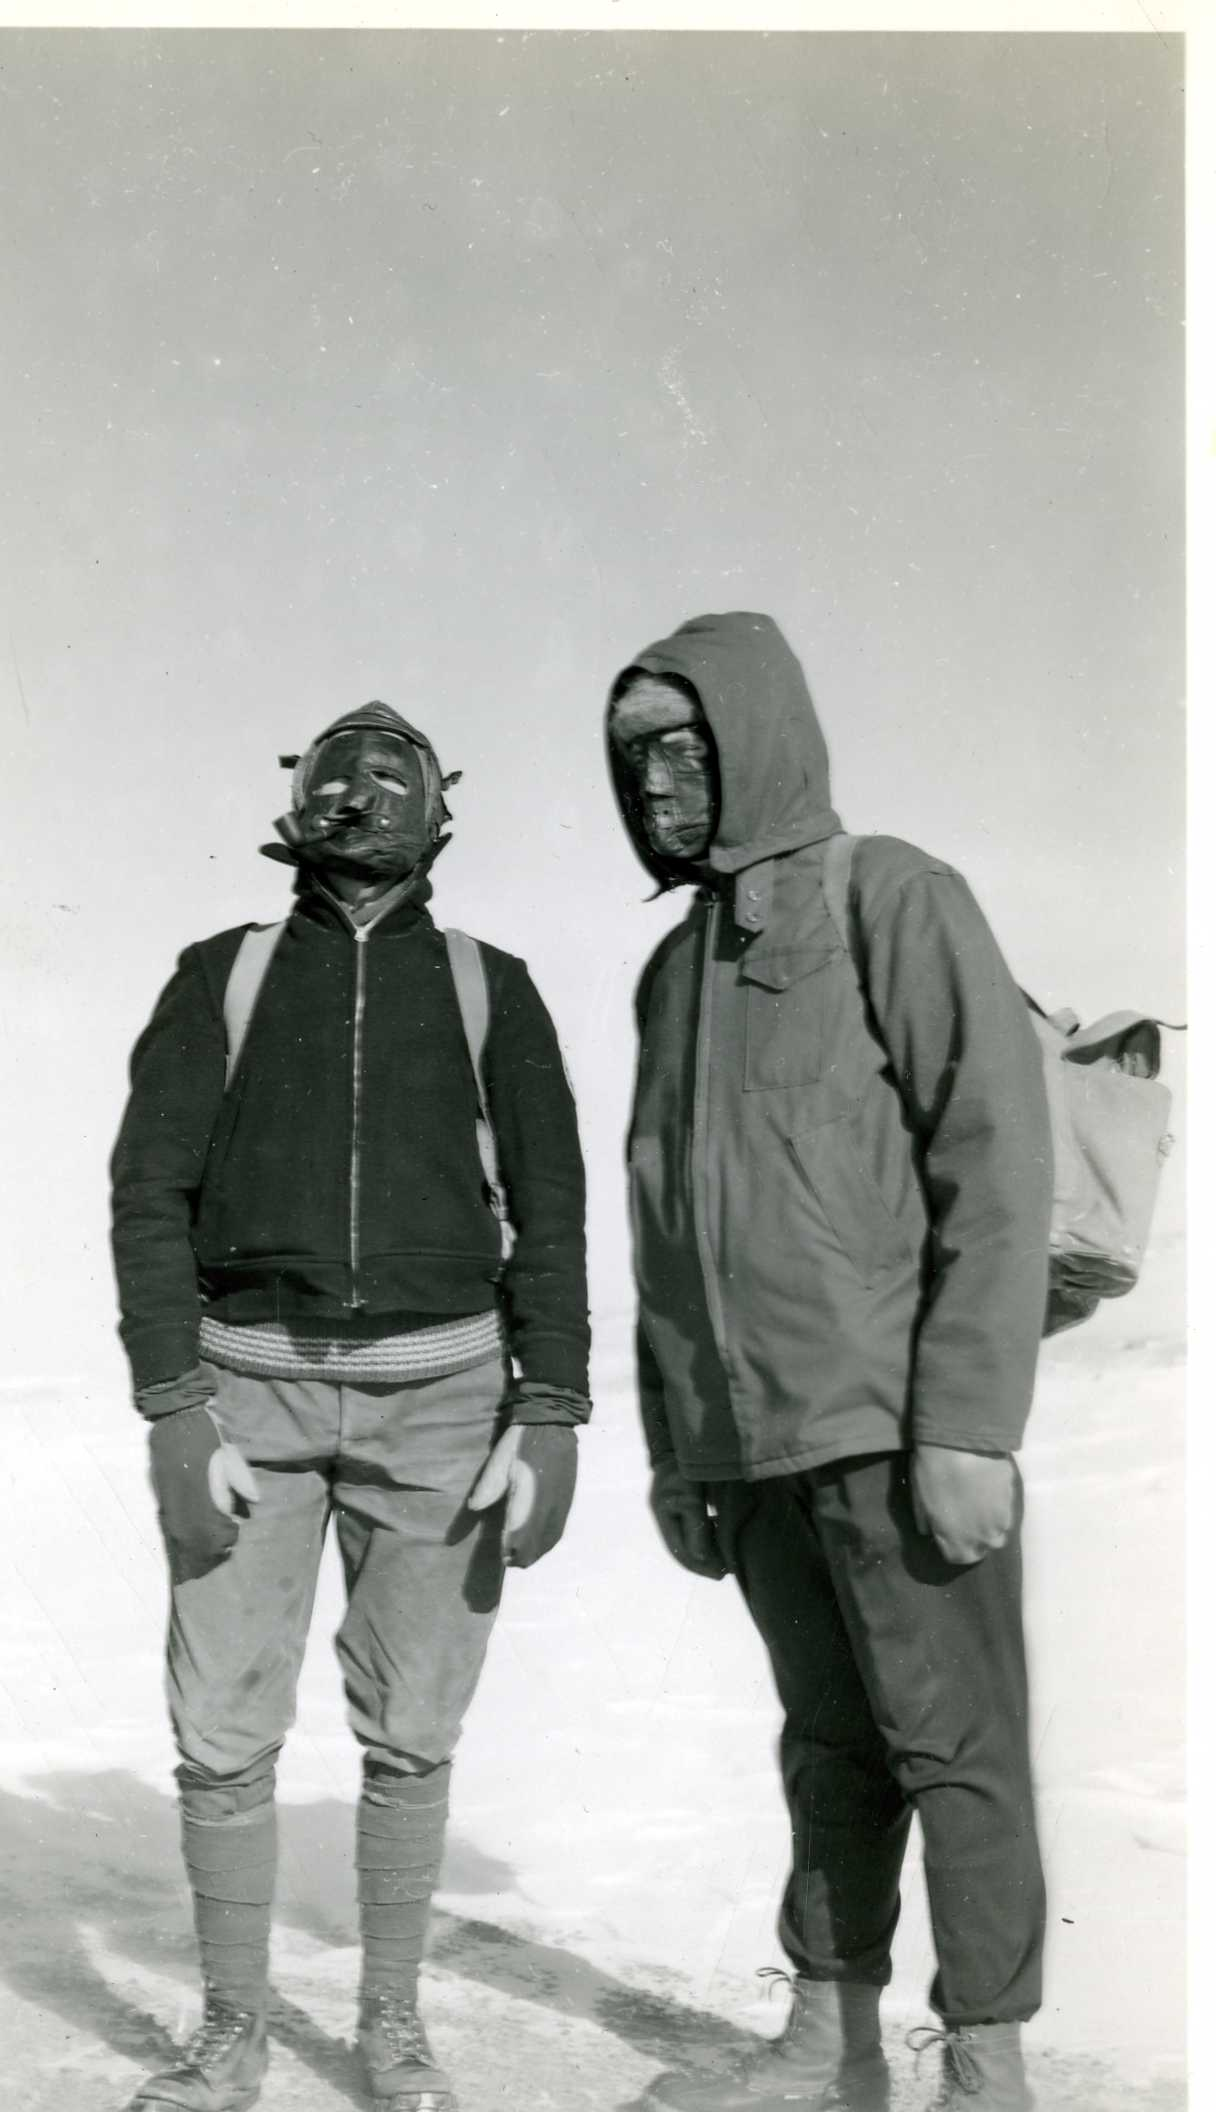 In contrast to the specialized gear club members use today, early AdAmAn members used more traditional means to stay warm including leather masks lined with wool, as shown in this photo.